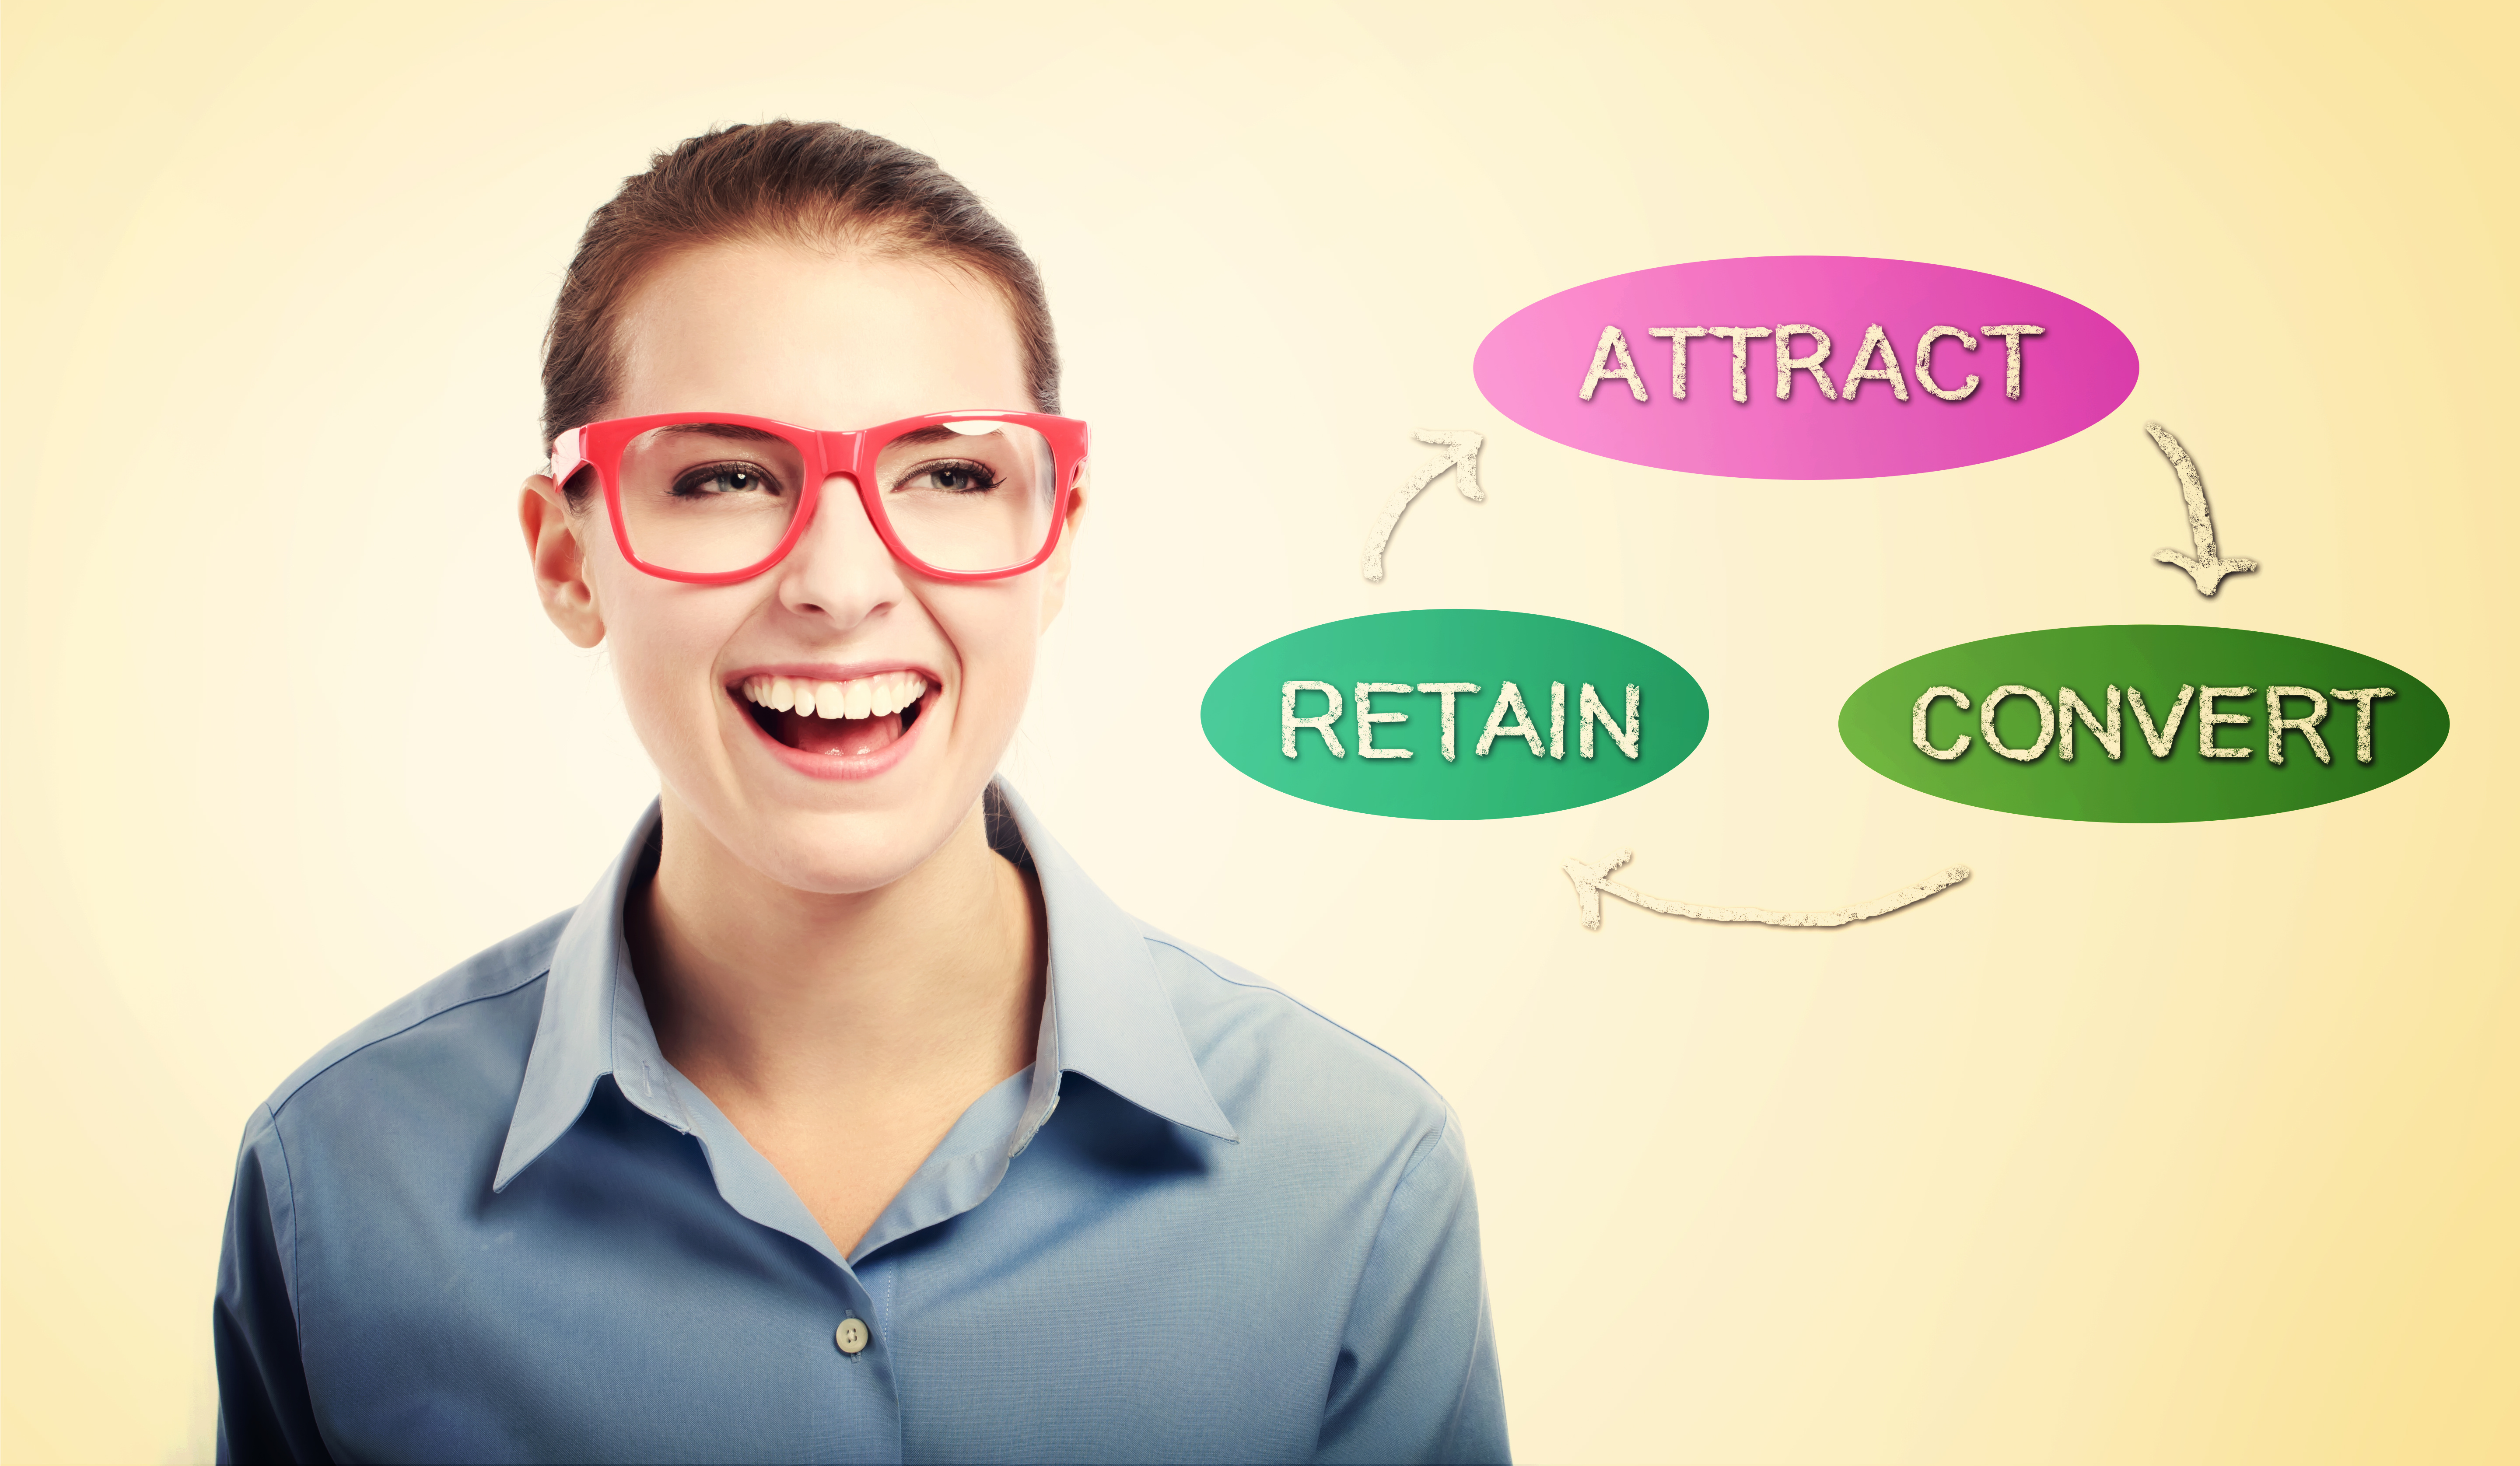 Business woman wearing a red eye glasses with concept of Attract, Convert, Retain